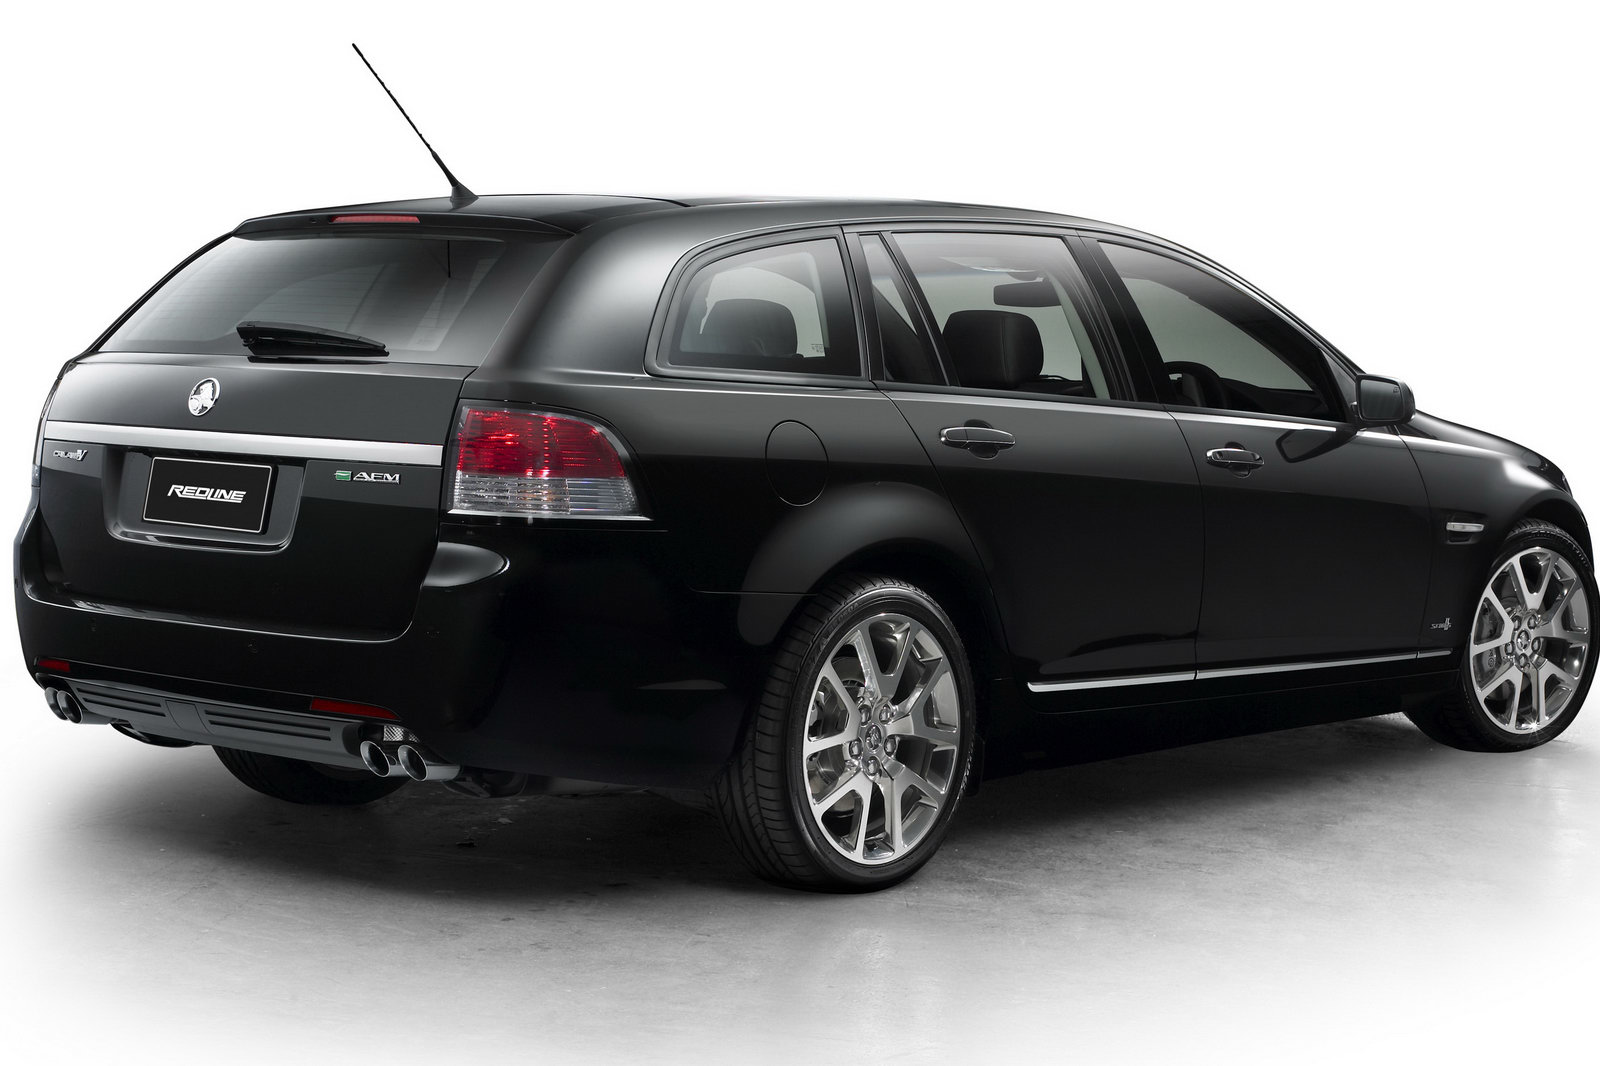 2011 Holden Commodore #16